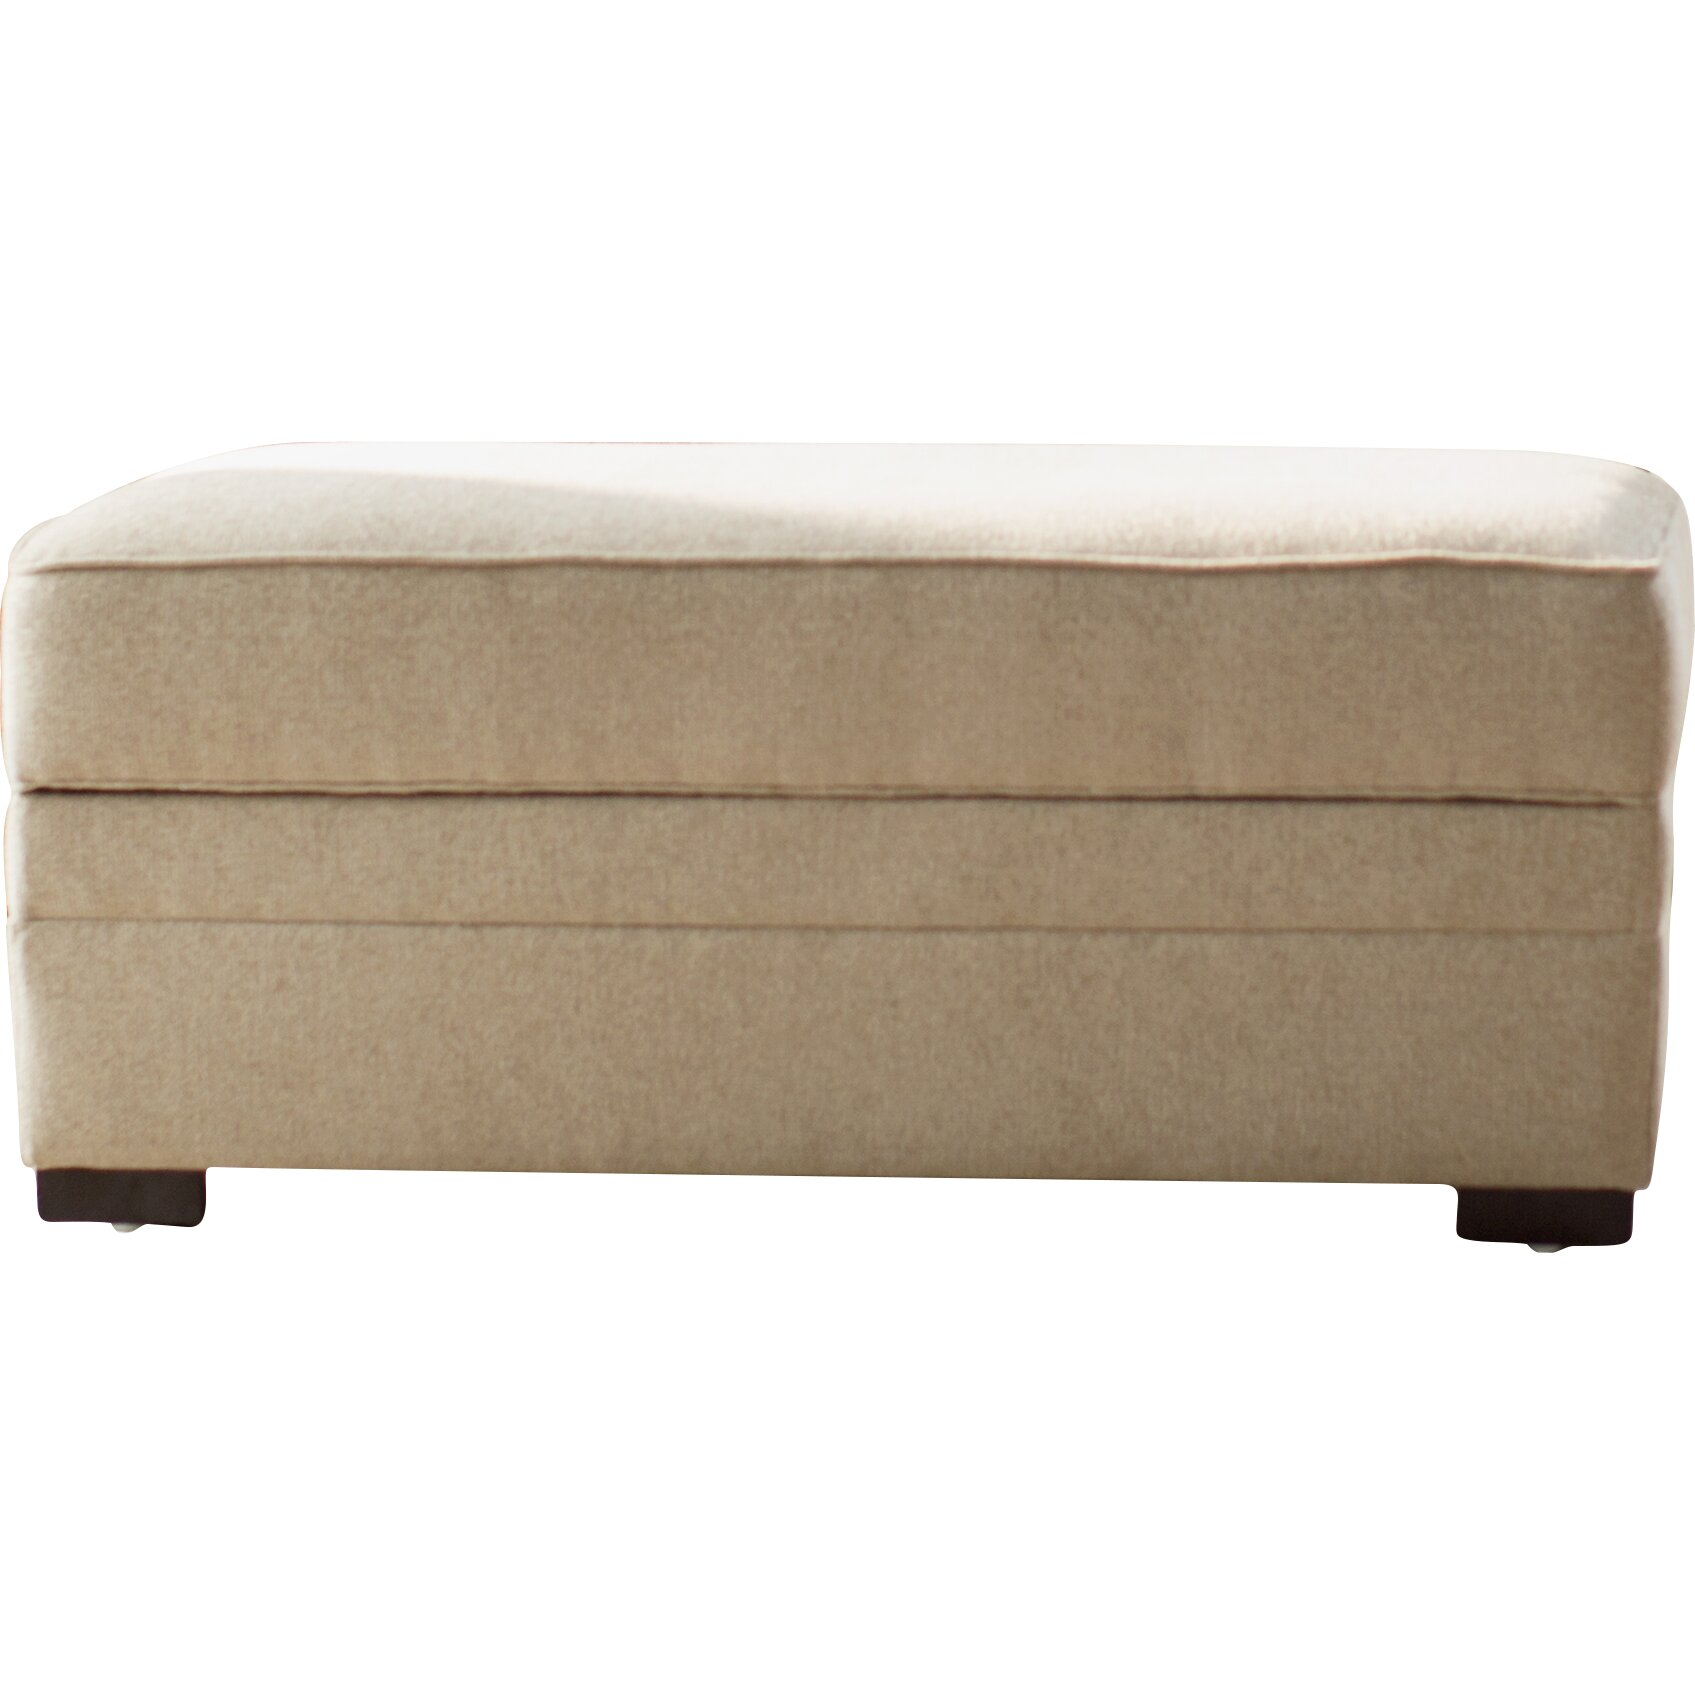 Three Posts Polycarp Storage Ottoman Reviews: Three Posts Hastings Storage Ottoman & Reviews